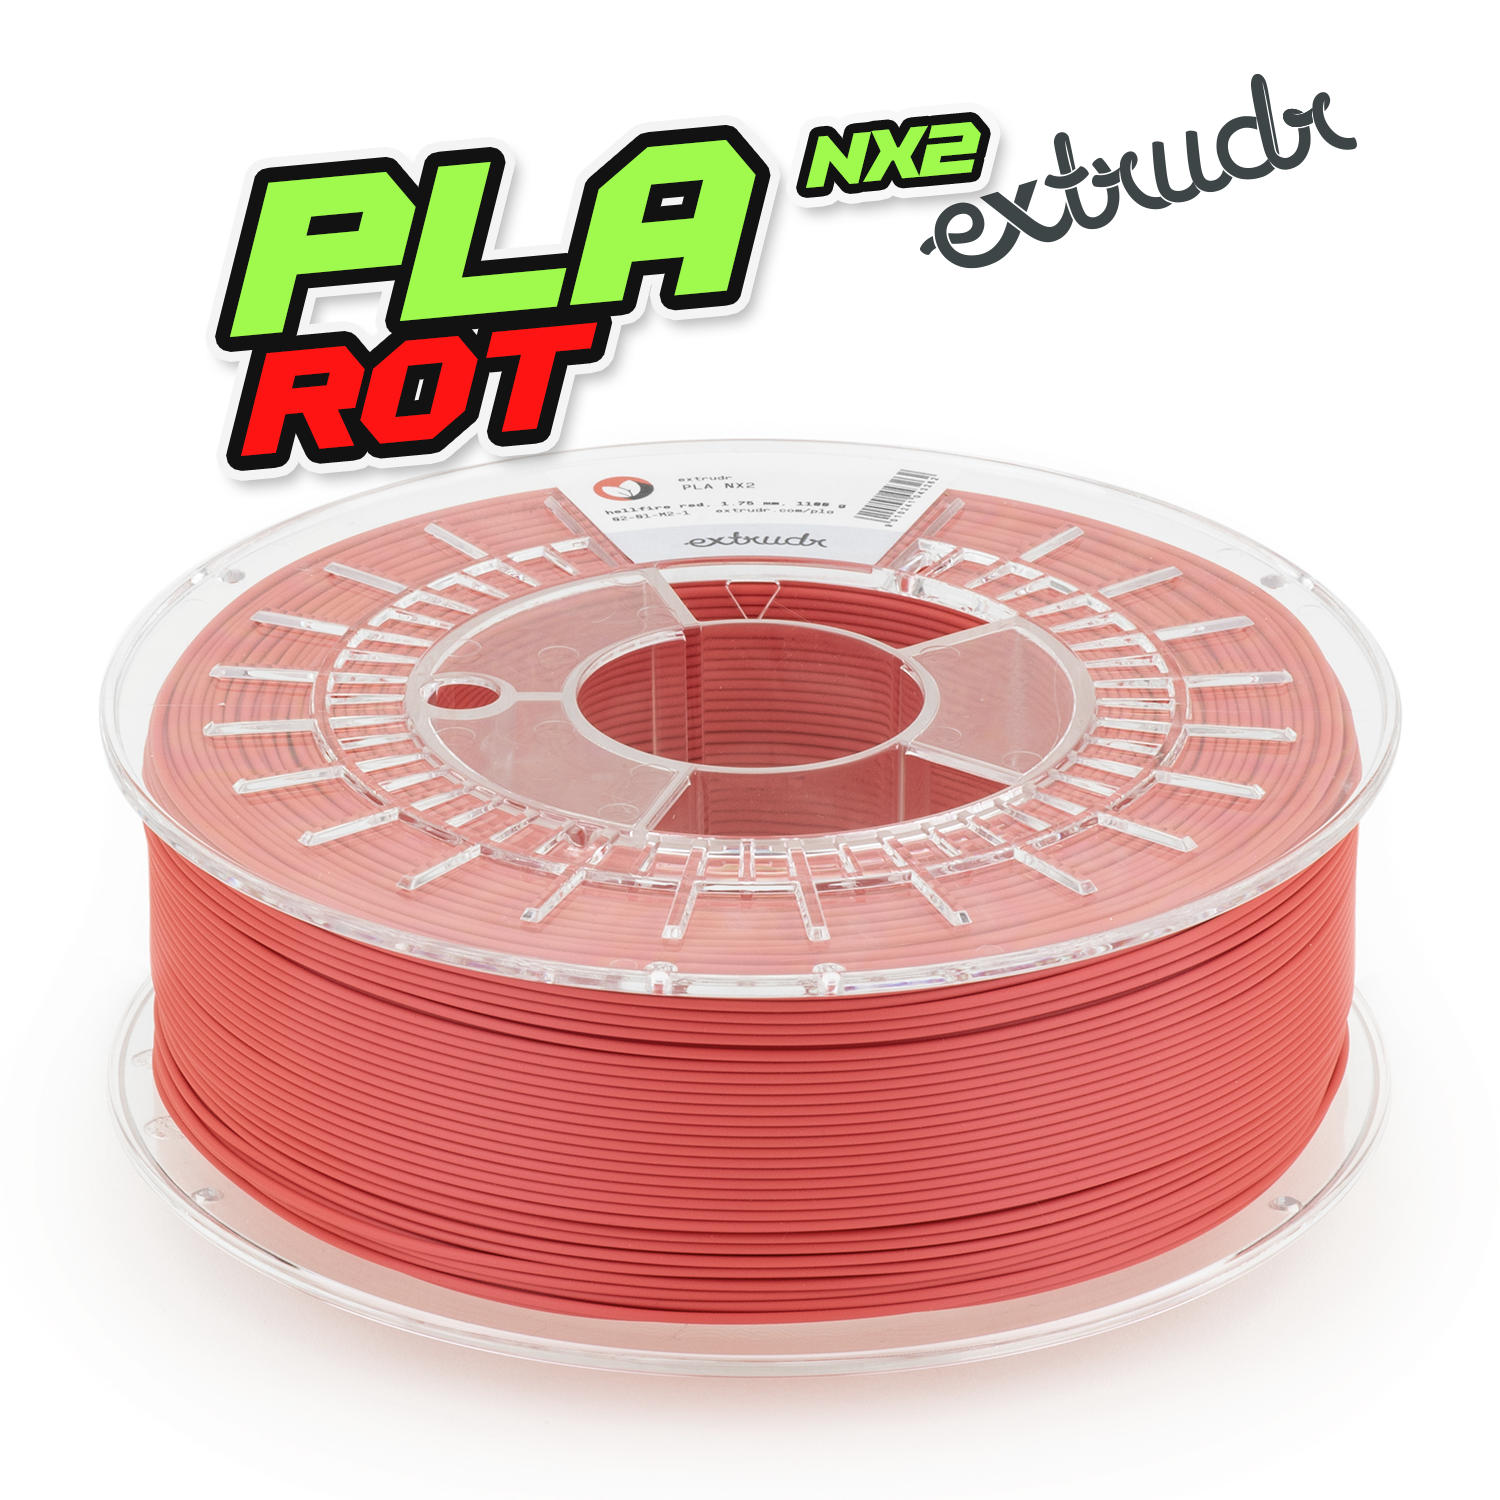 Extrudr PLA NX2 - Hellfire Rot [1.75mm] (23,62€/Kg)